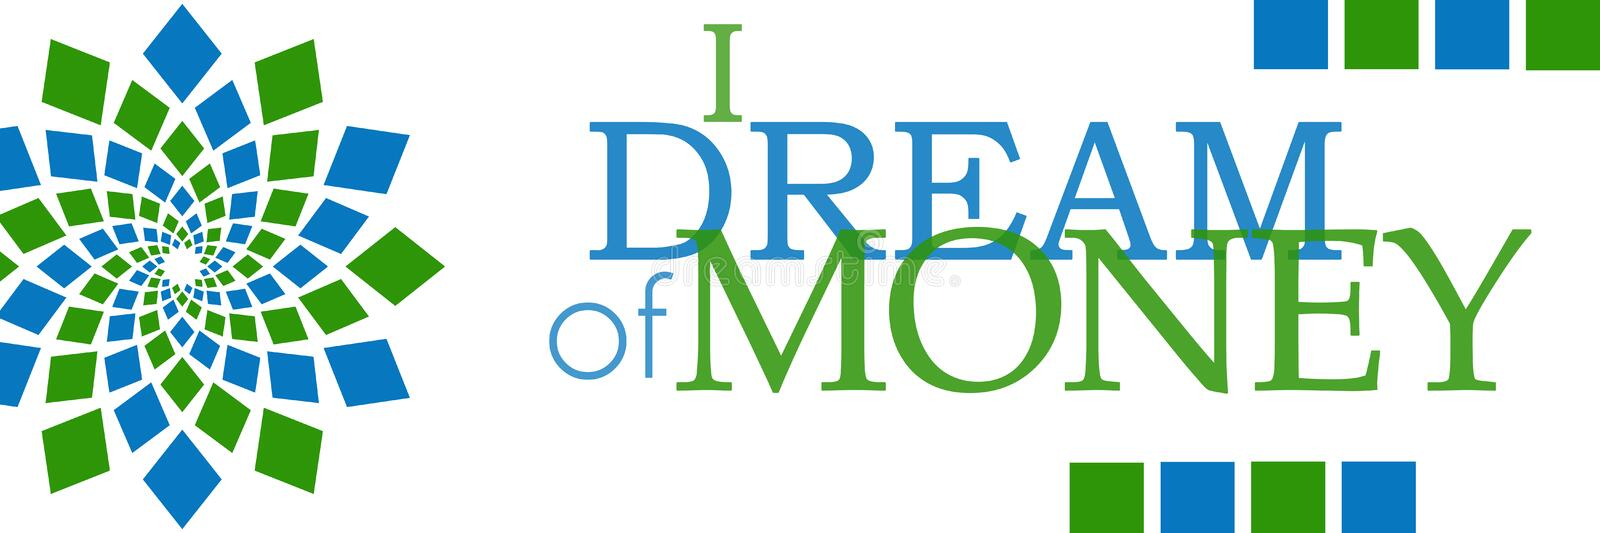 I Dream Of Money Green Blue Element Horizontal vector illustration